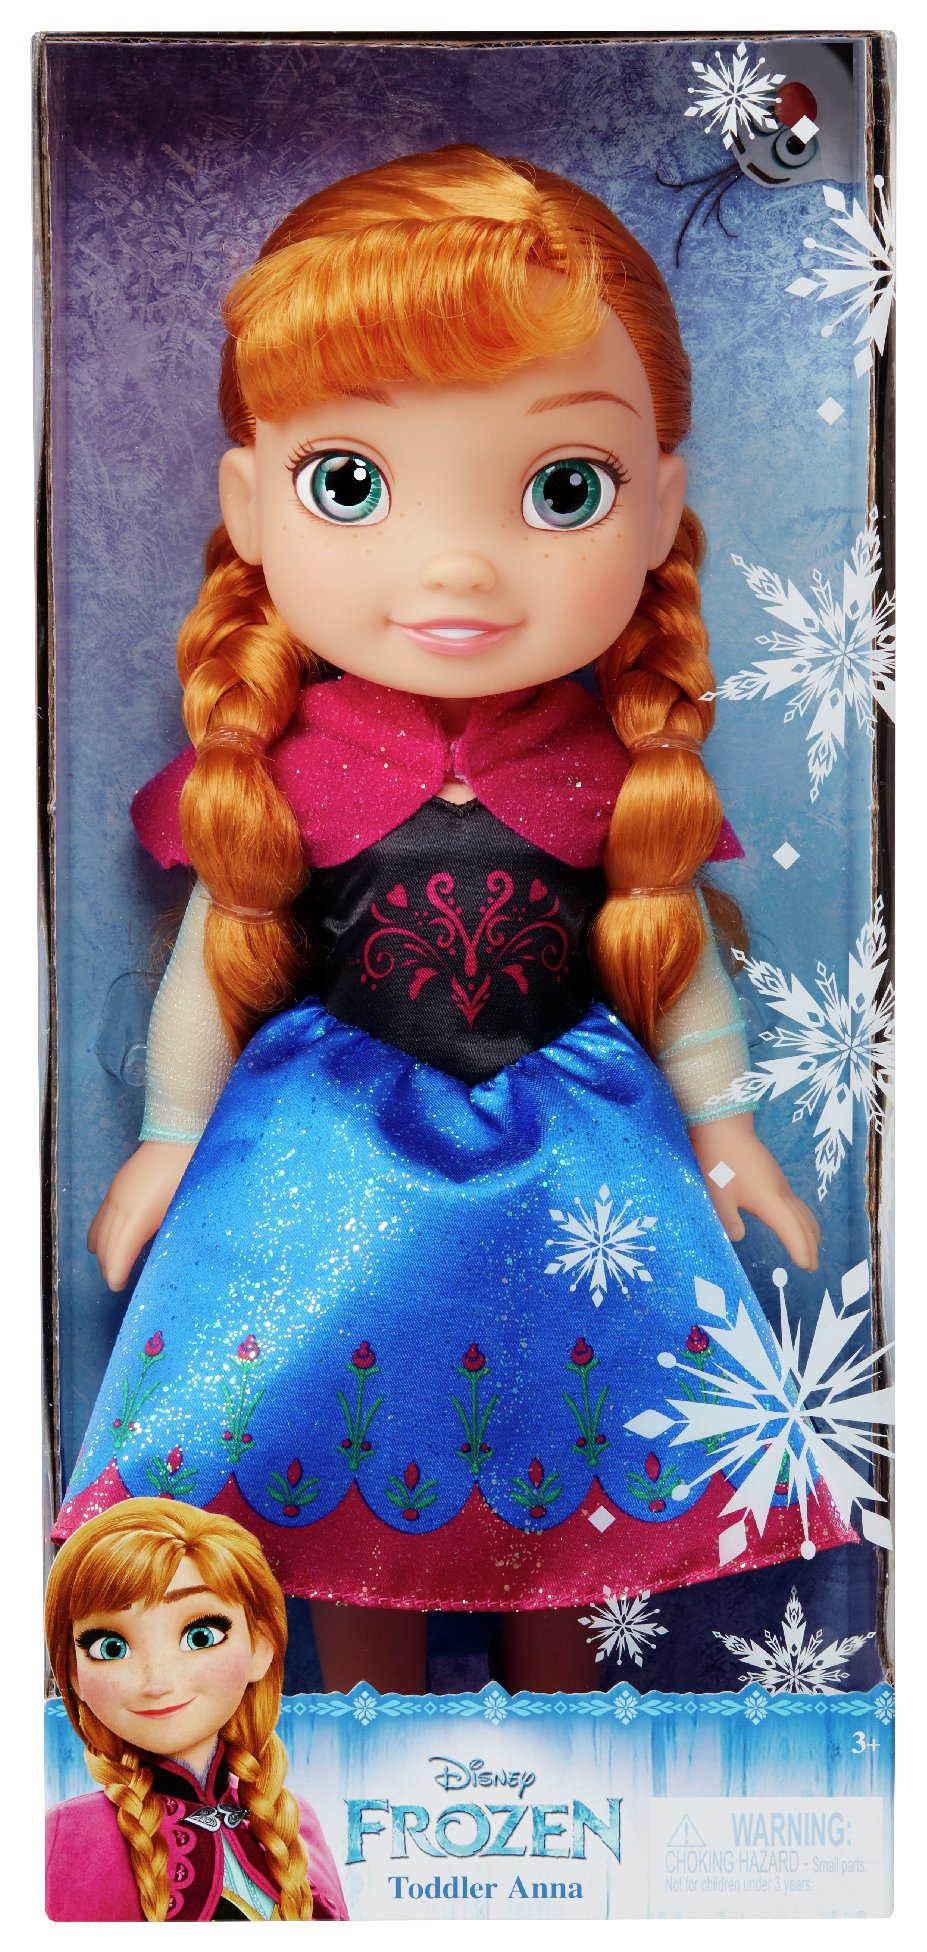 Image of Disney Frozen Anna Toddler Doll